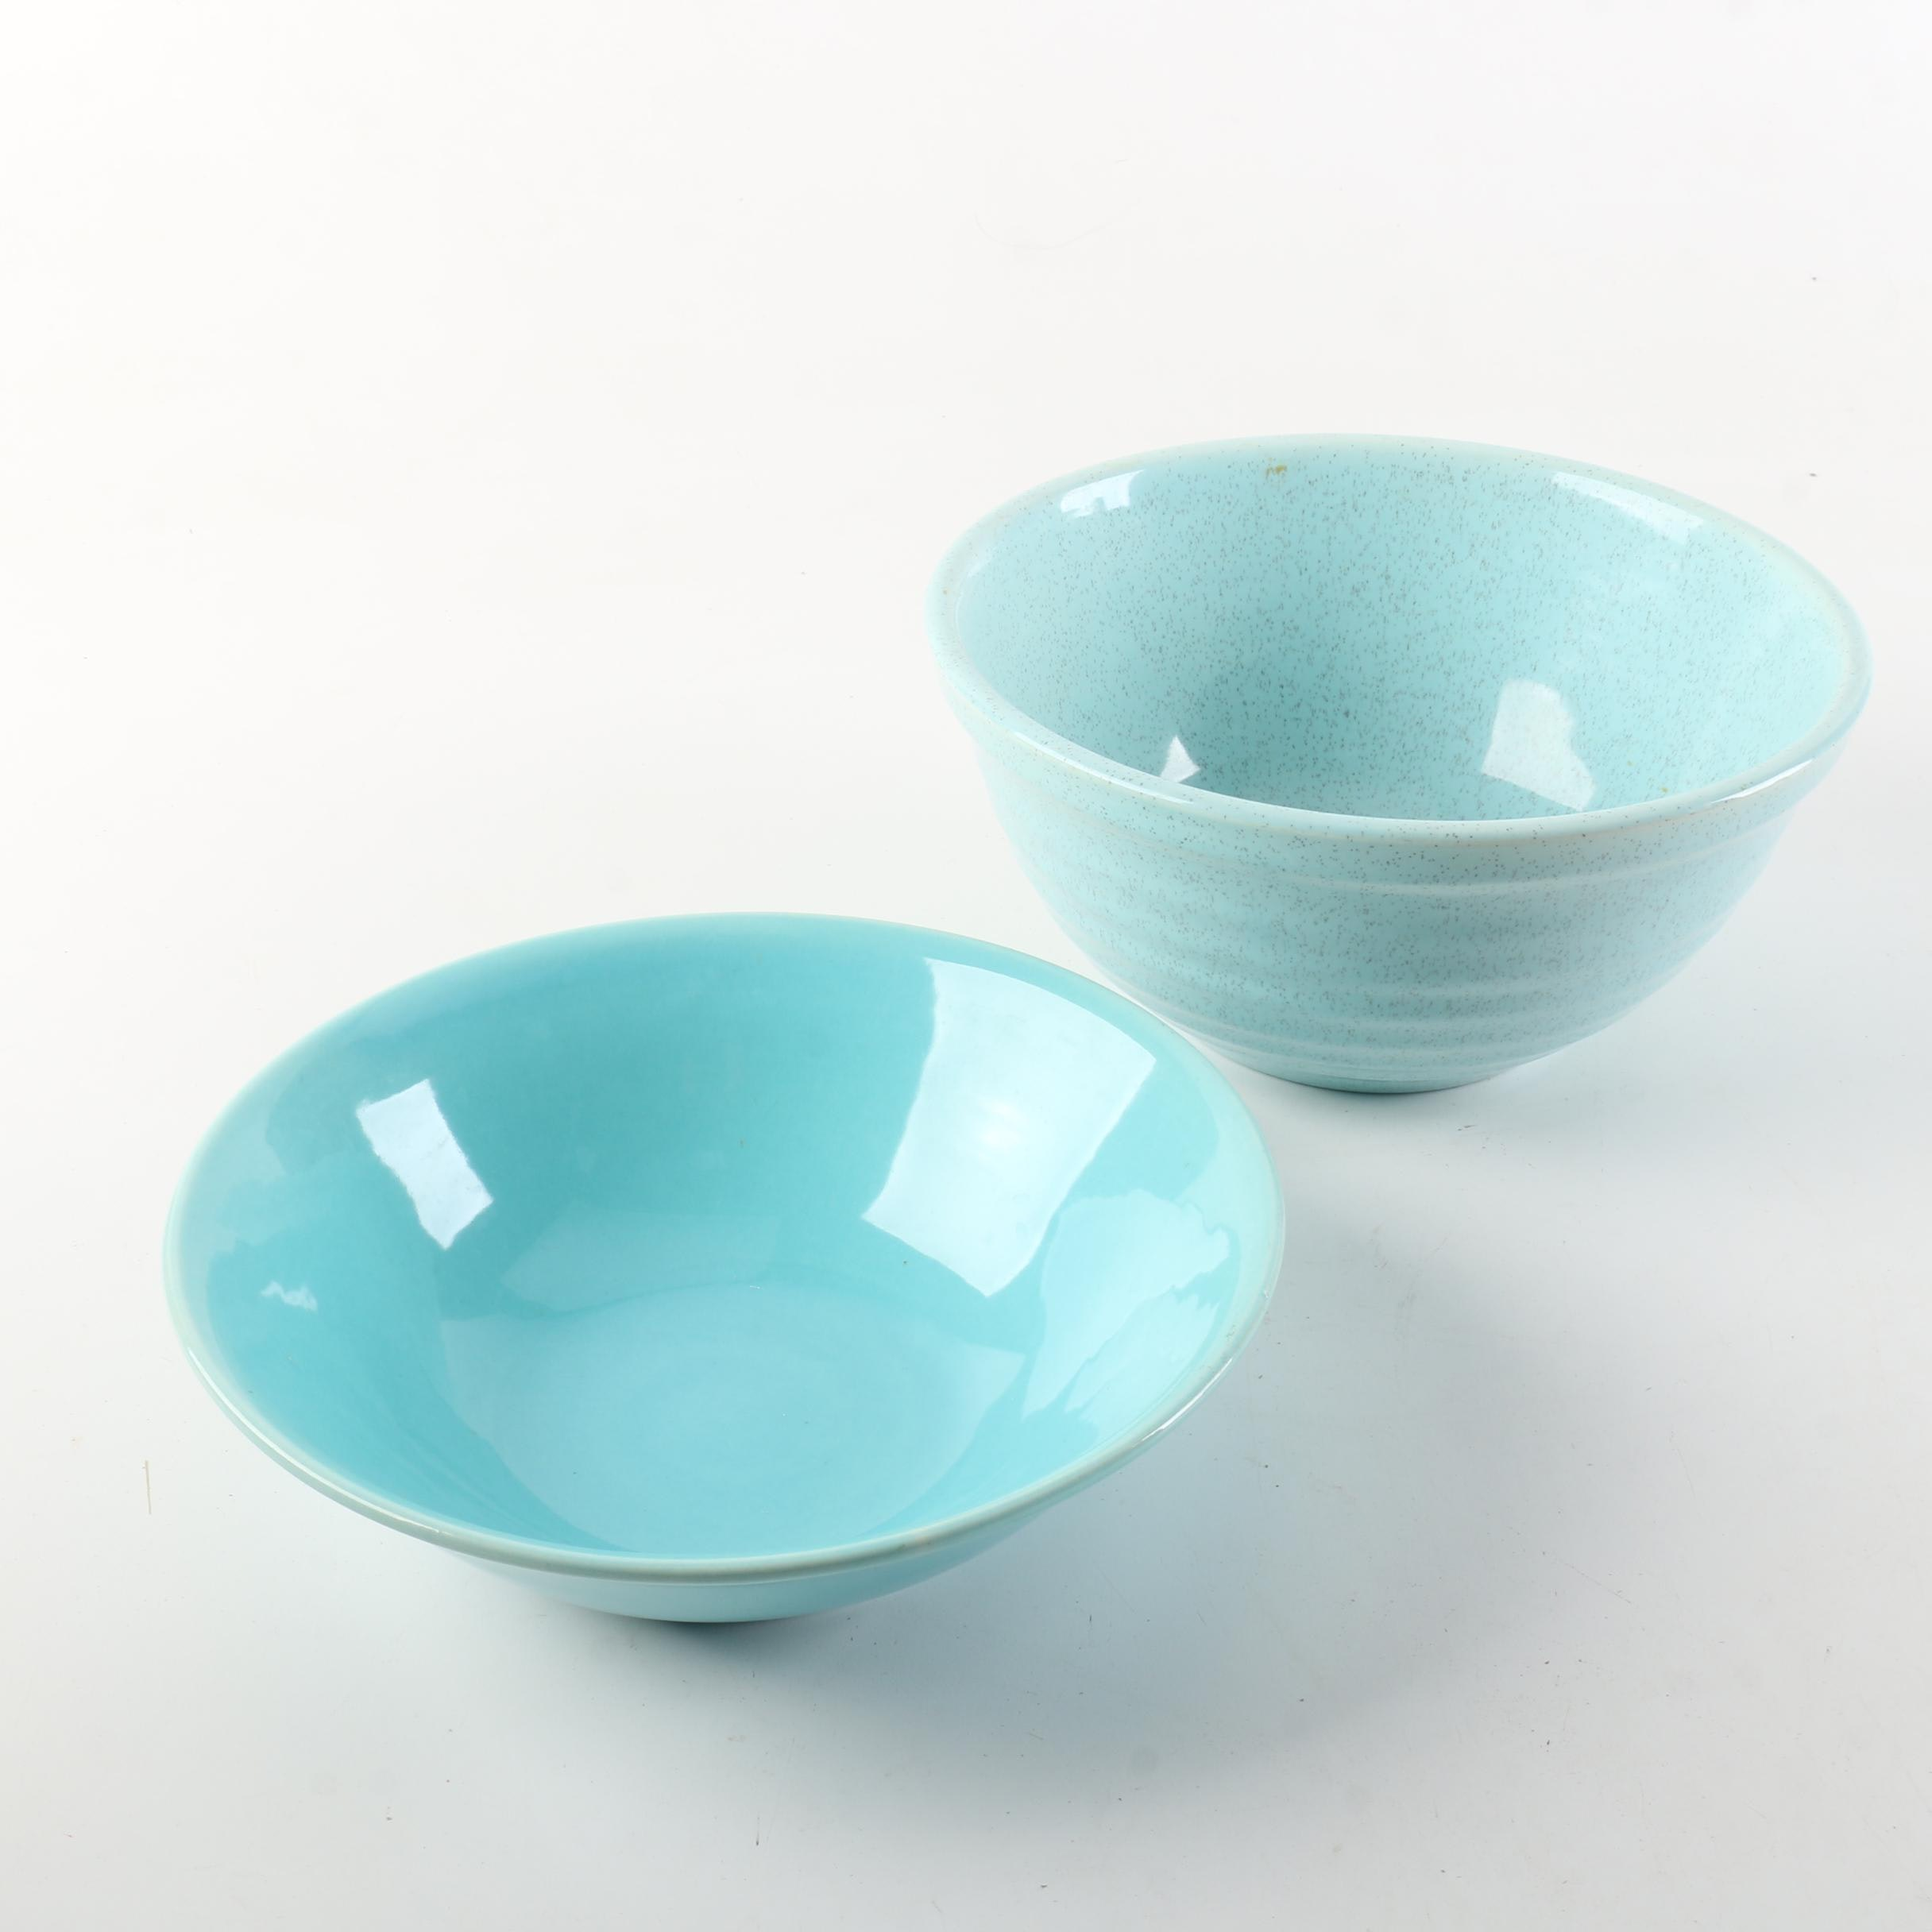 Bauer and Speckled Blue Bowls